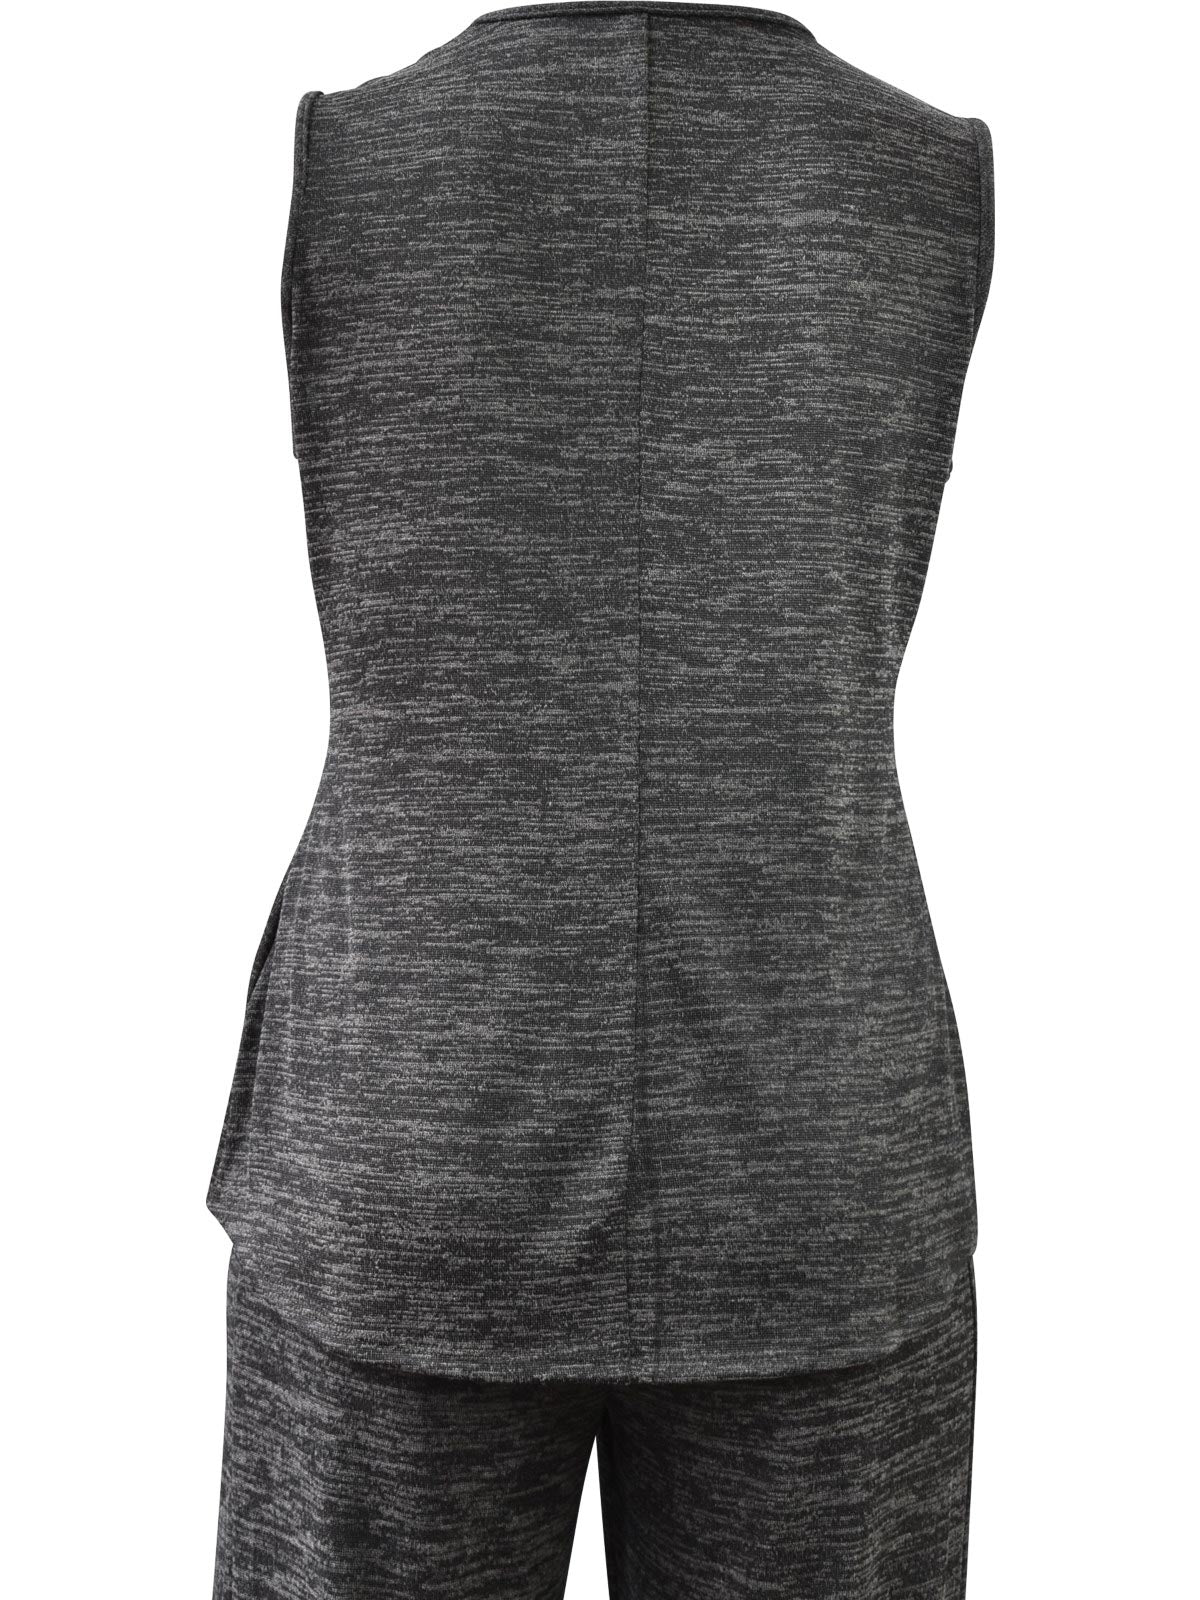 Khangura Tank Top, Charcoal - Statement Boutique